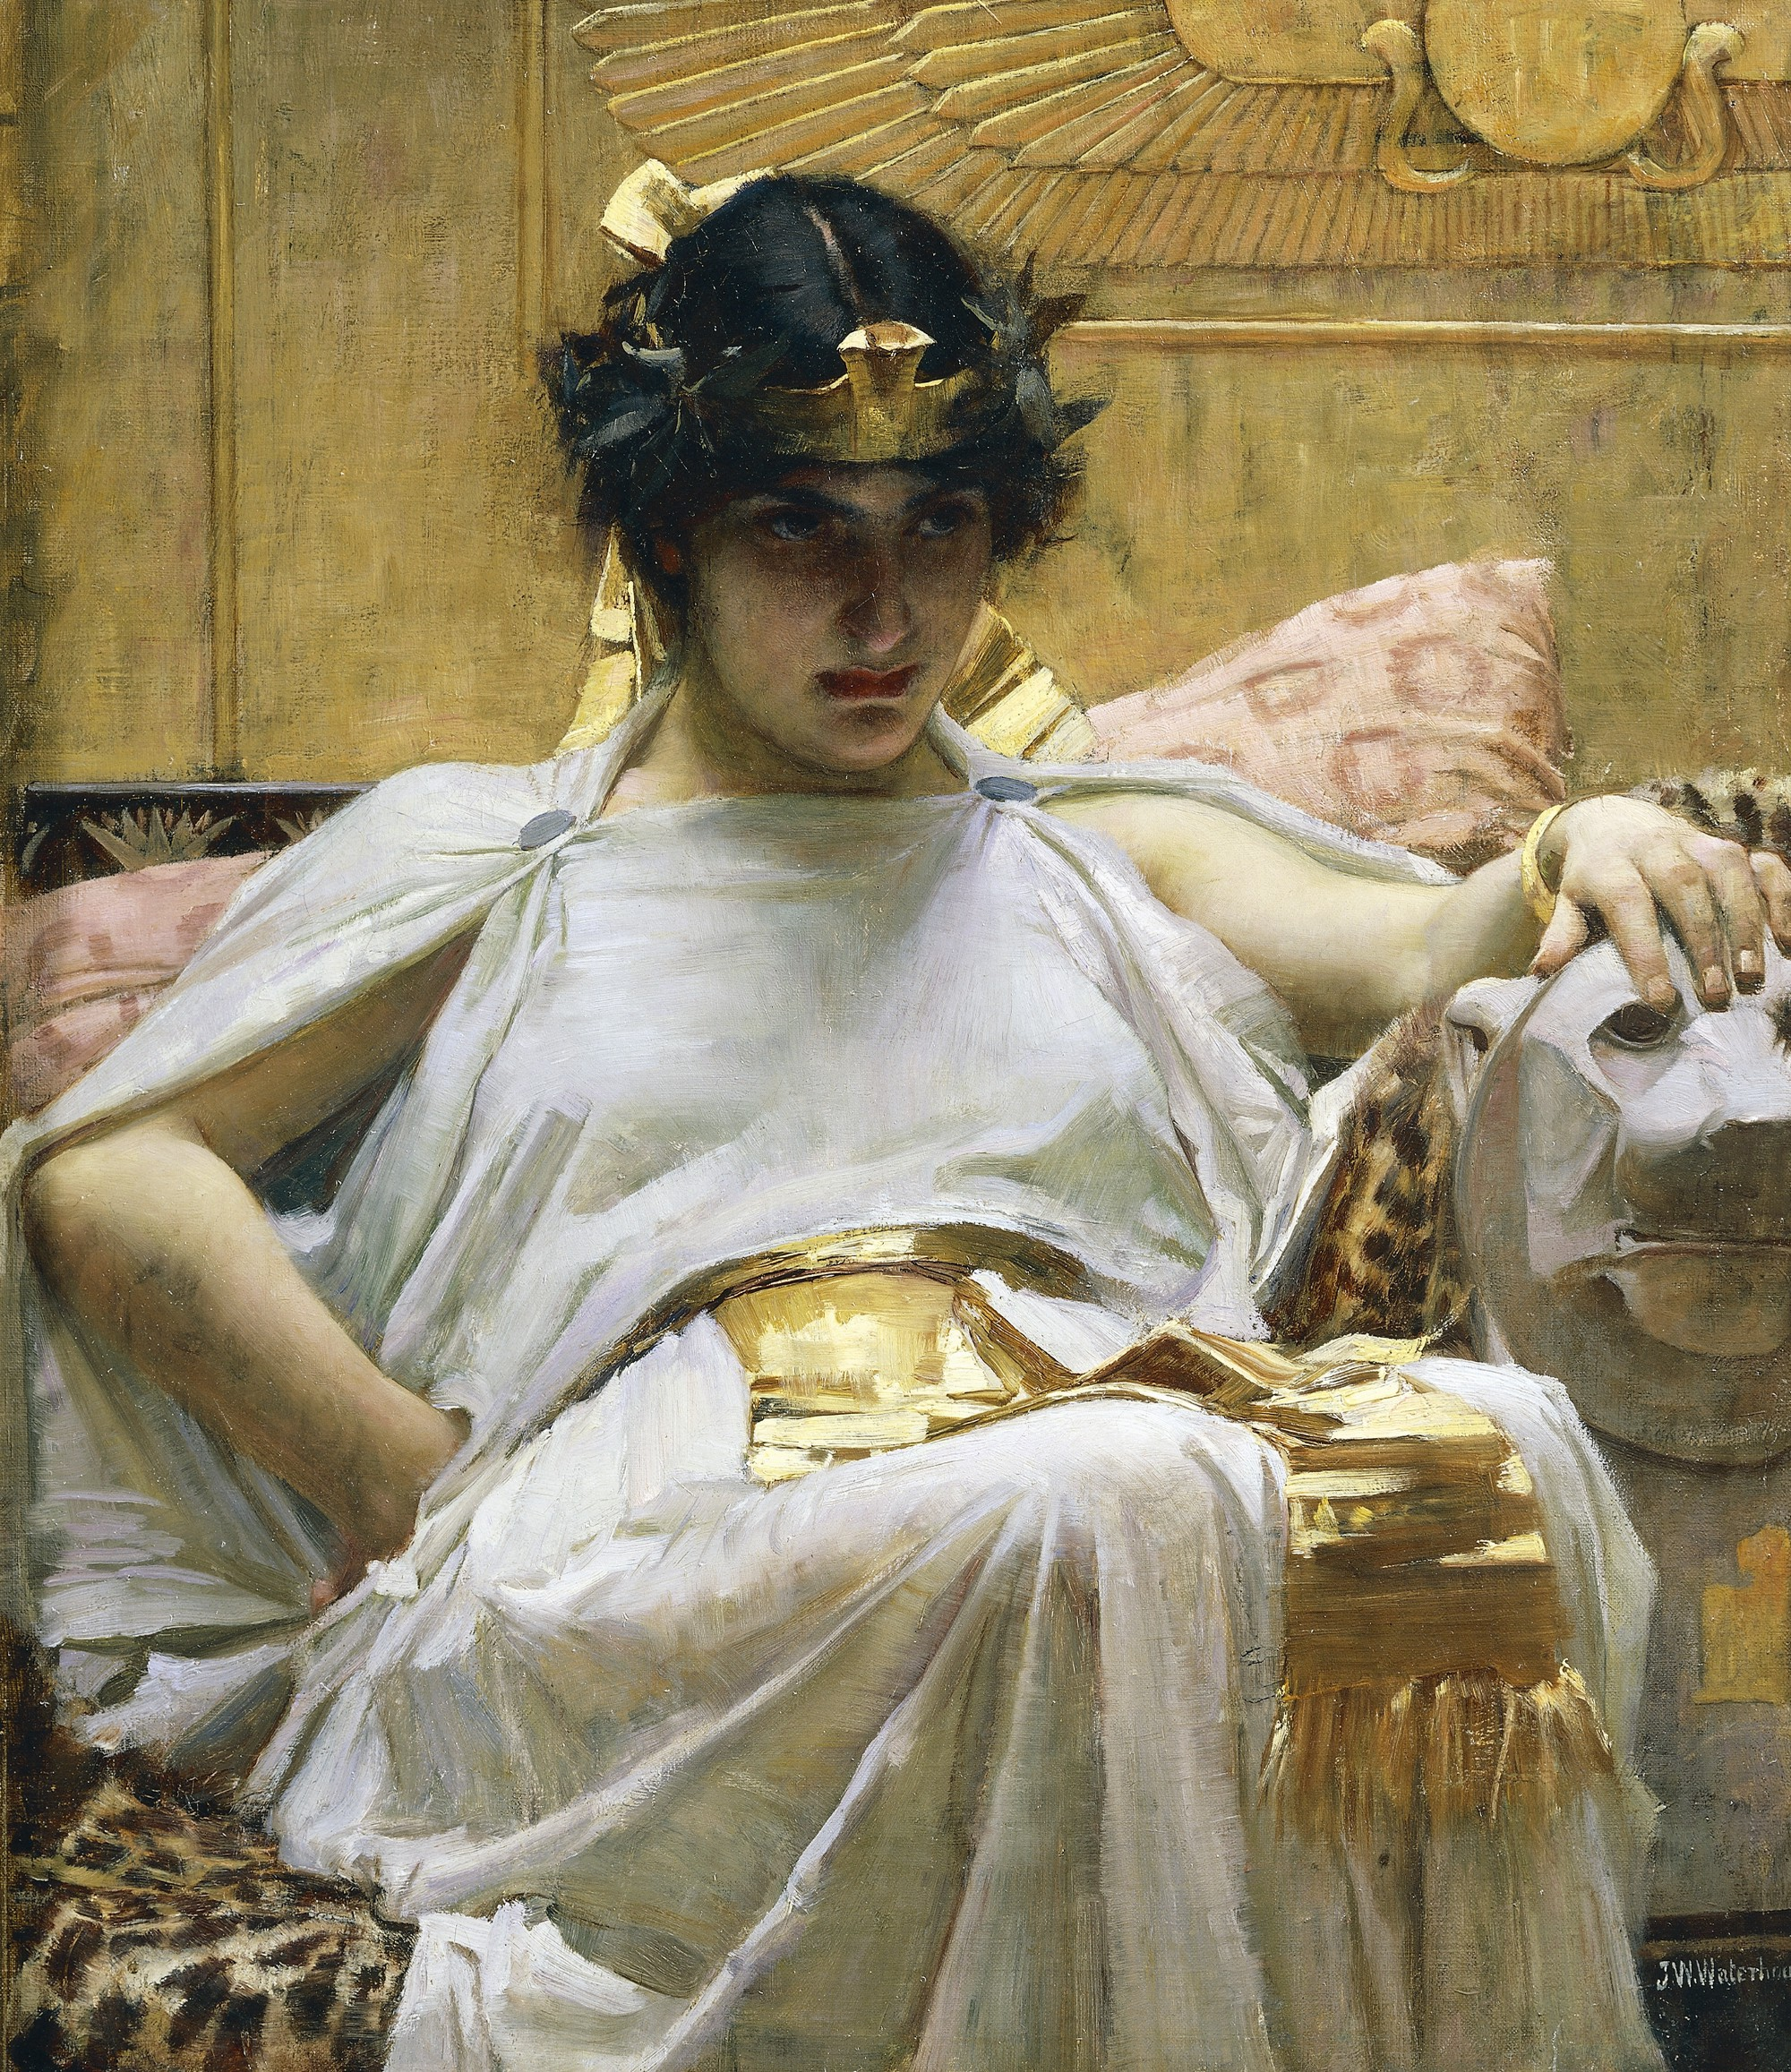 Cleopatra early life facts